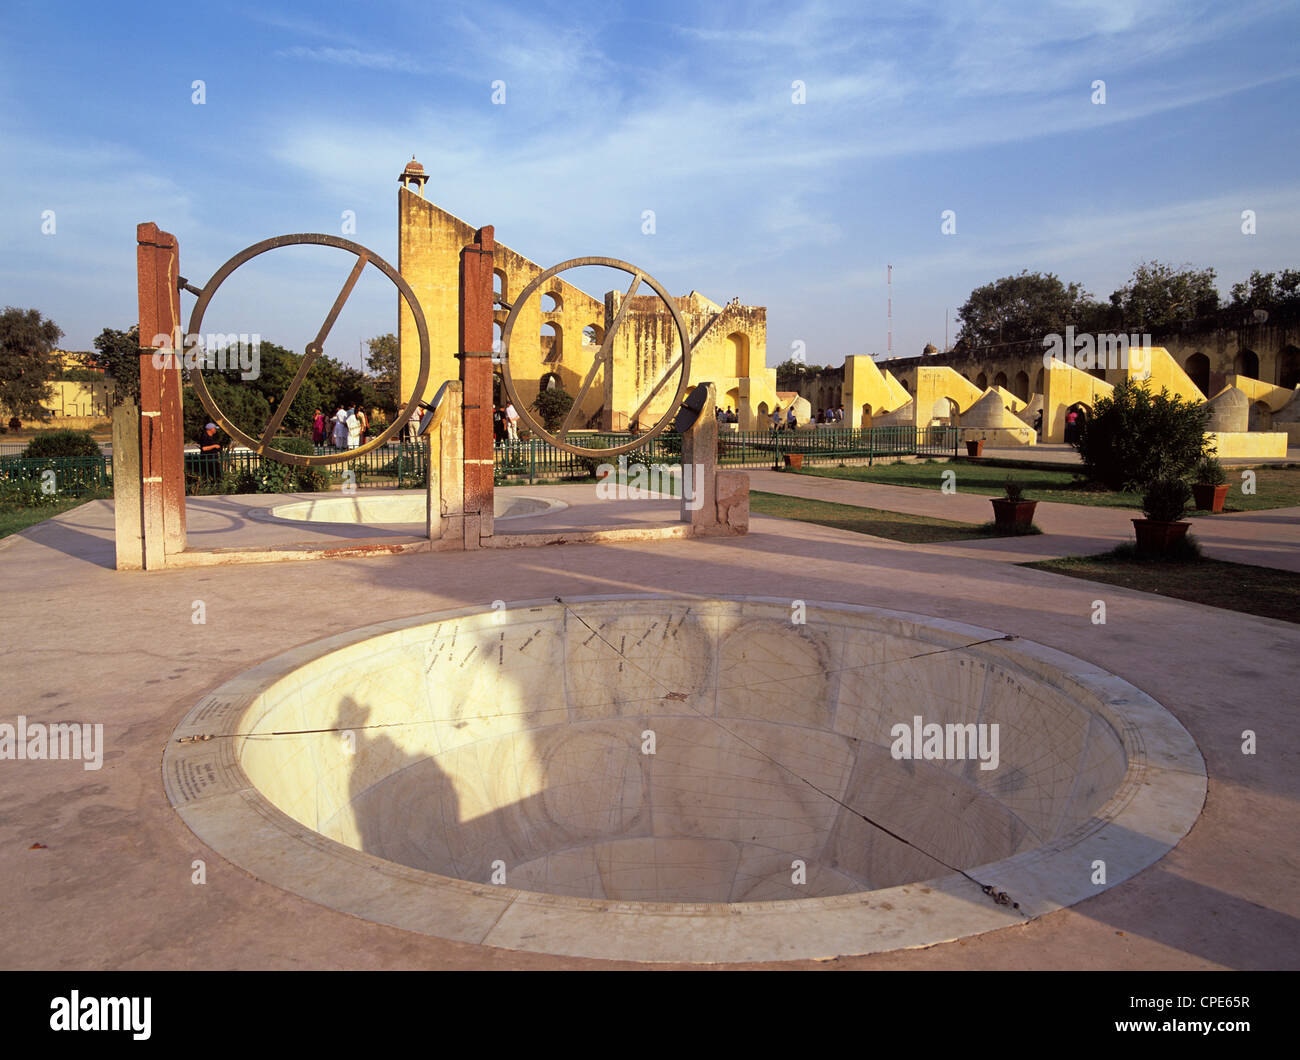 The 18th century observatory, Jantar Mantar, built by Jai Singh II in Jaipur, Rajasthan, India, Asia - Stock Image